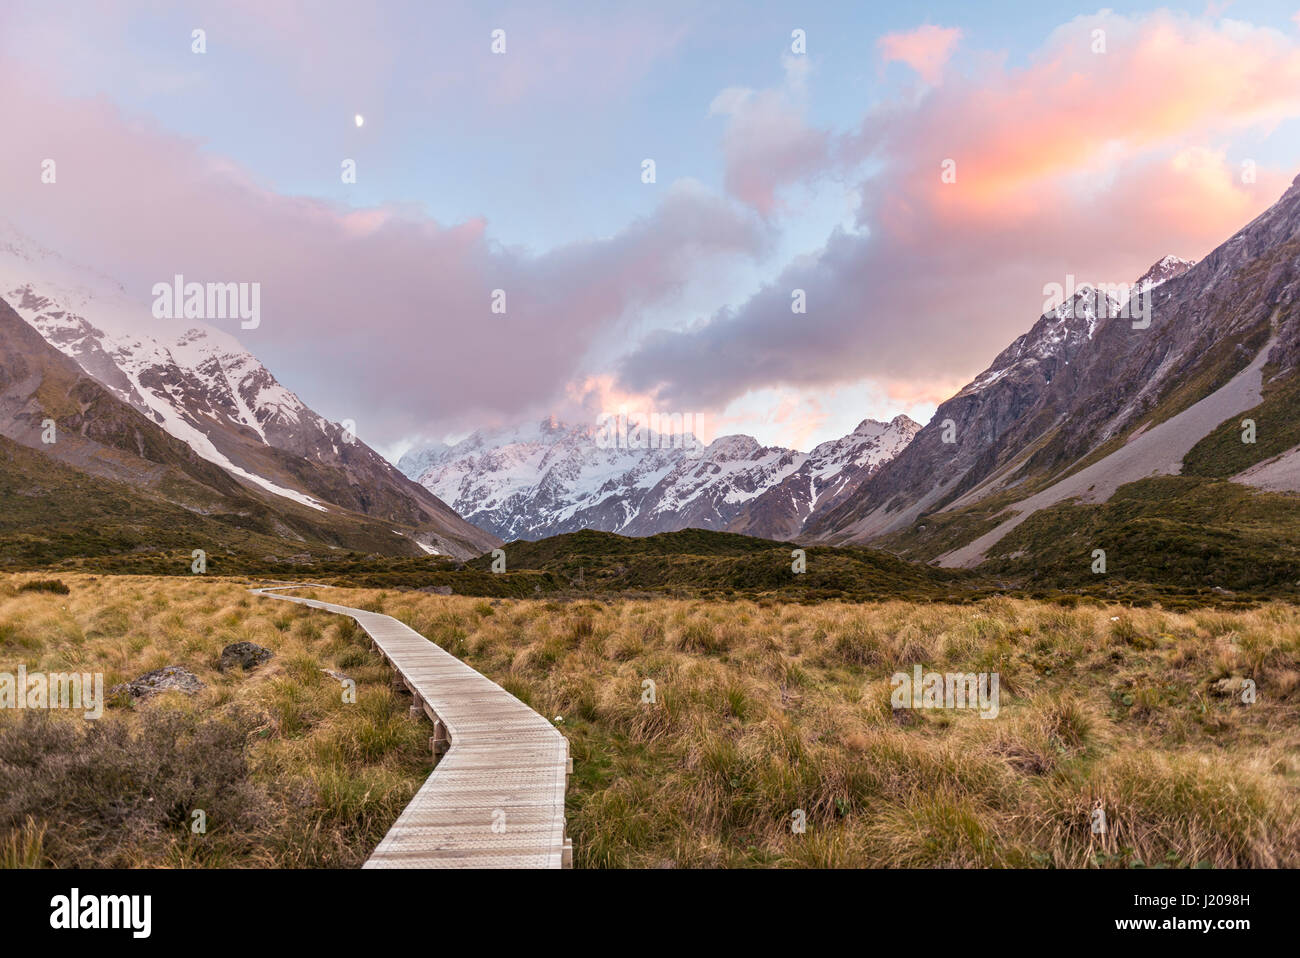 Sunrise, Trail durch Hooker Valley, hinten Mount Cook, Mount Cook Nationalpark, Südalpen, Canterbury Region Stockbild